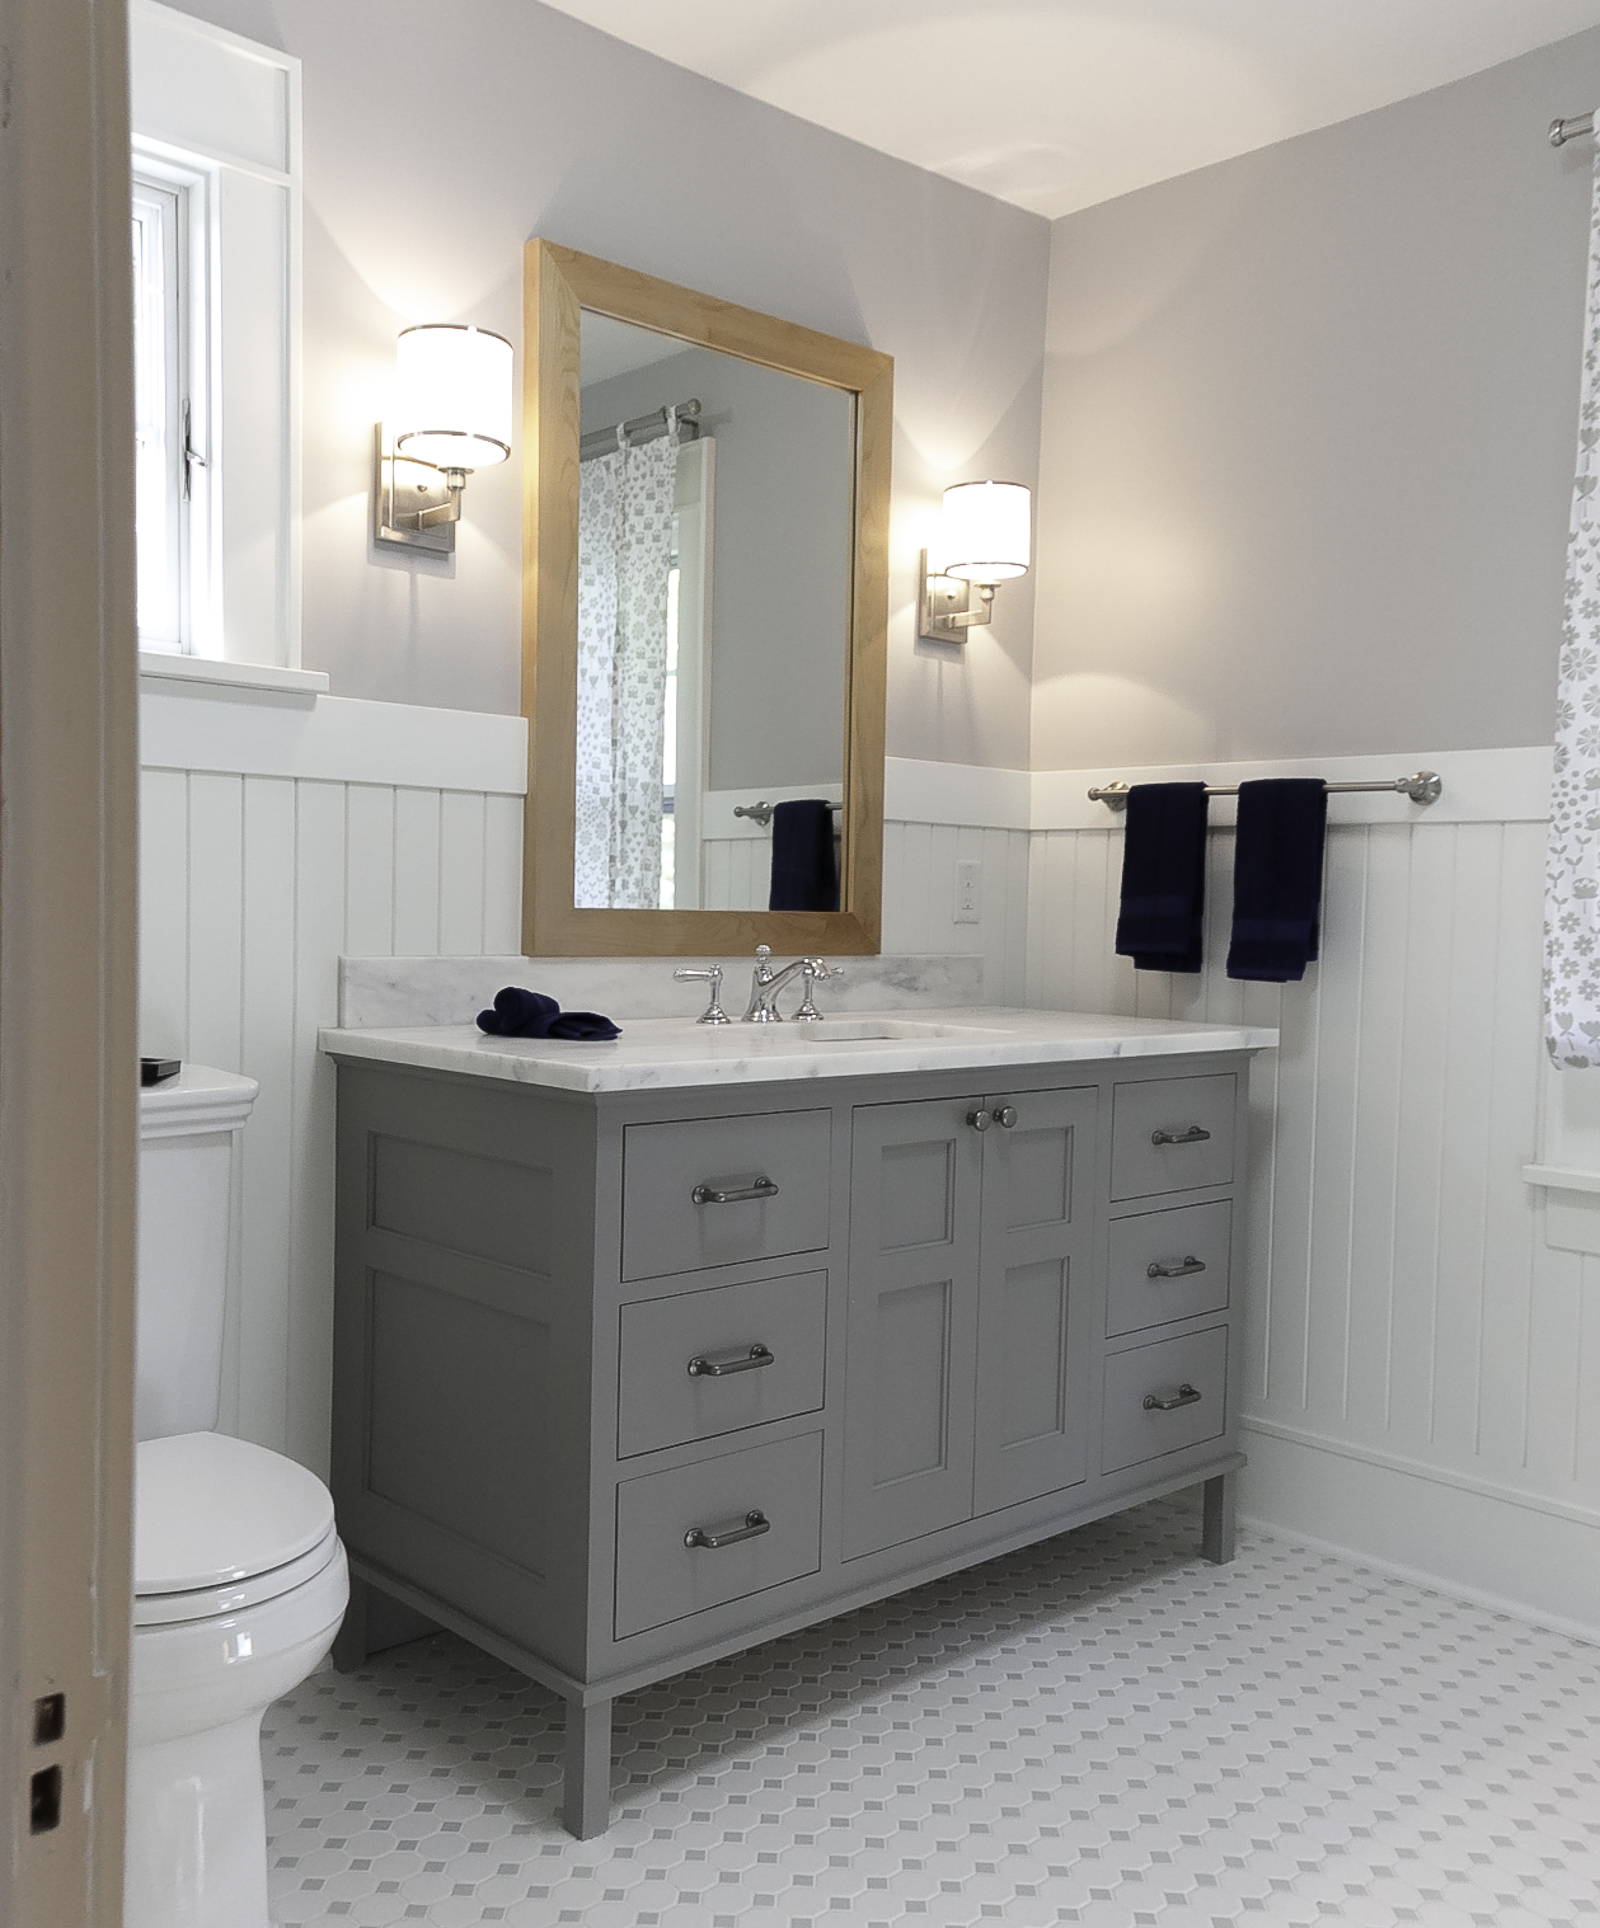 St Paul Home Restoration Custom Kitchen Bathroom Cabinetry - Bathroom remodeling st paul mn